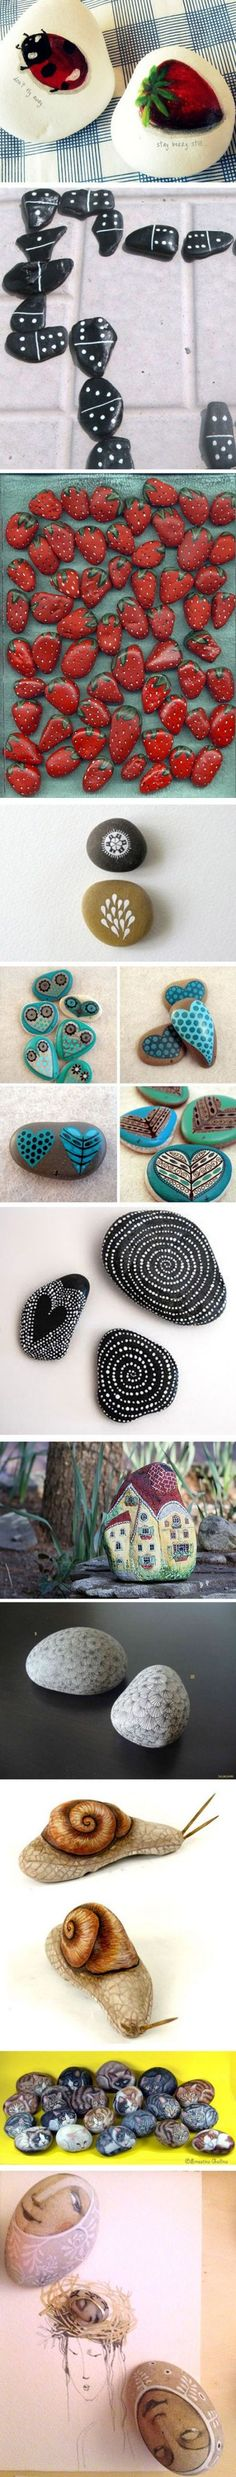 Painted pebbles - a great idea to entertain the kids on a rainy beach holiday!